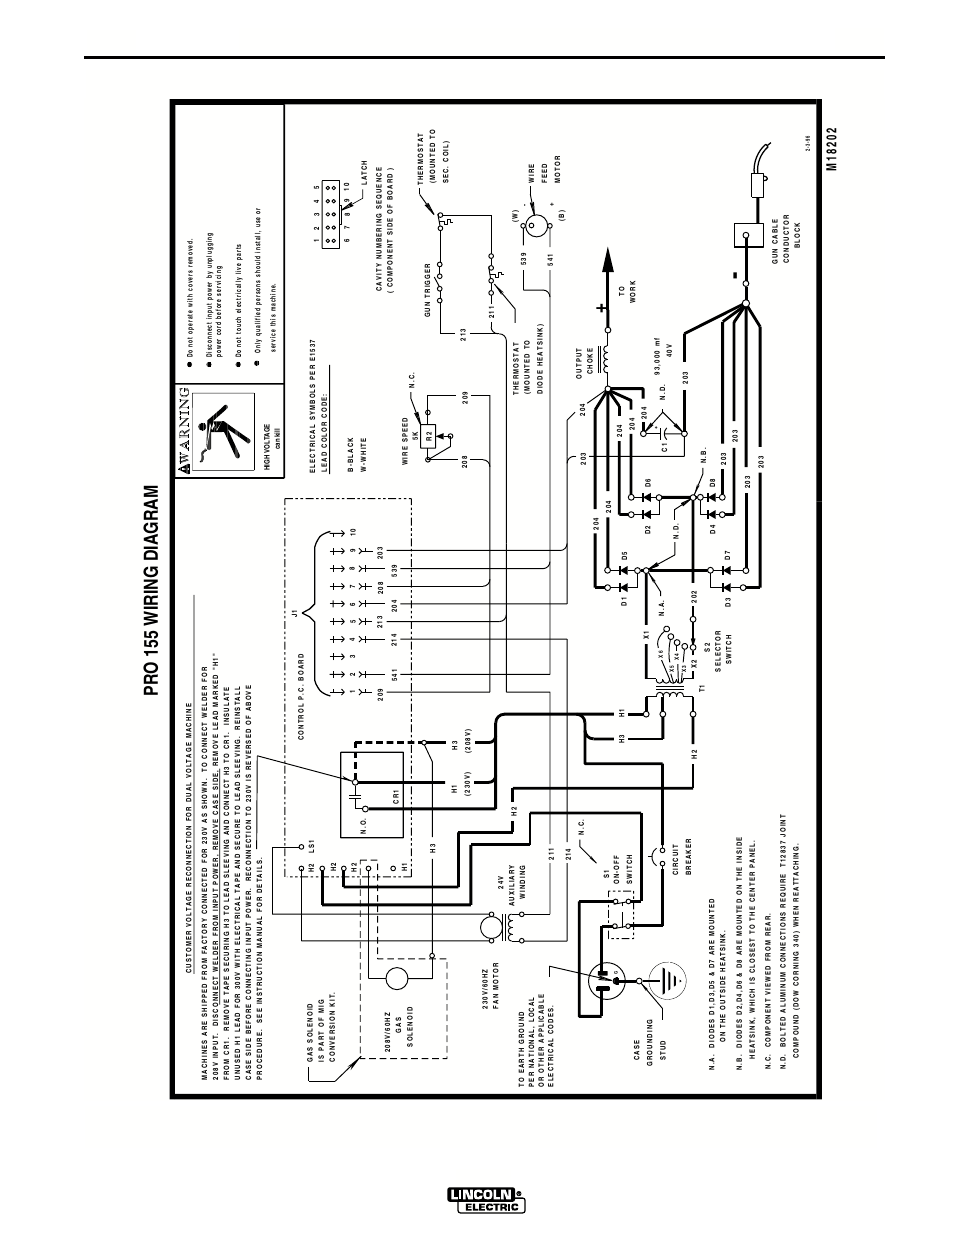 Diagrams#11751637: Lincoln Electric Wire Diagram